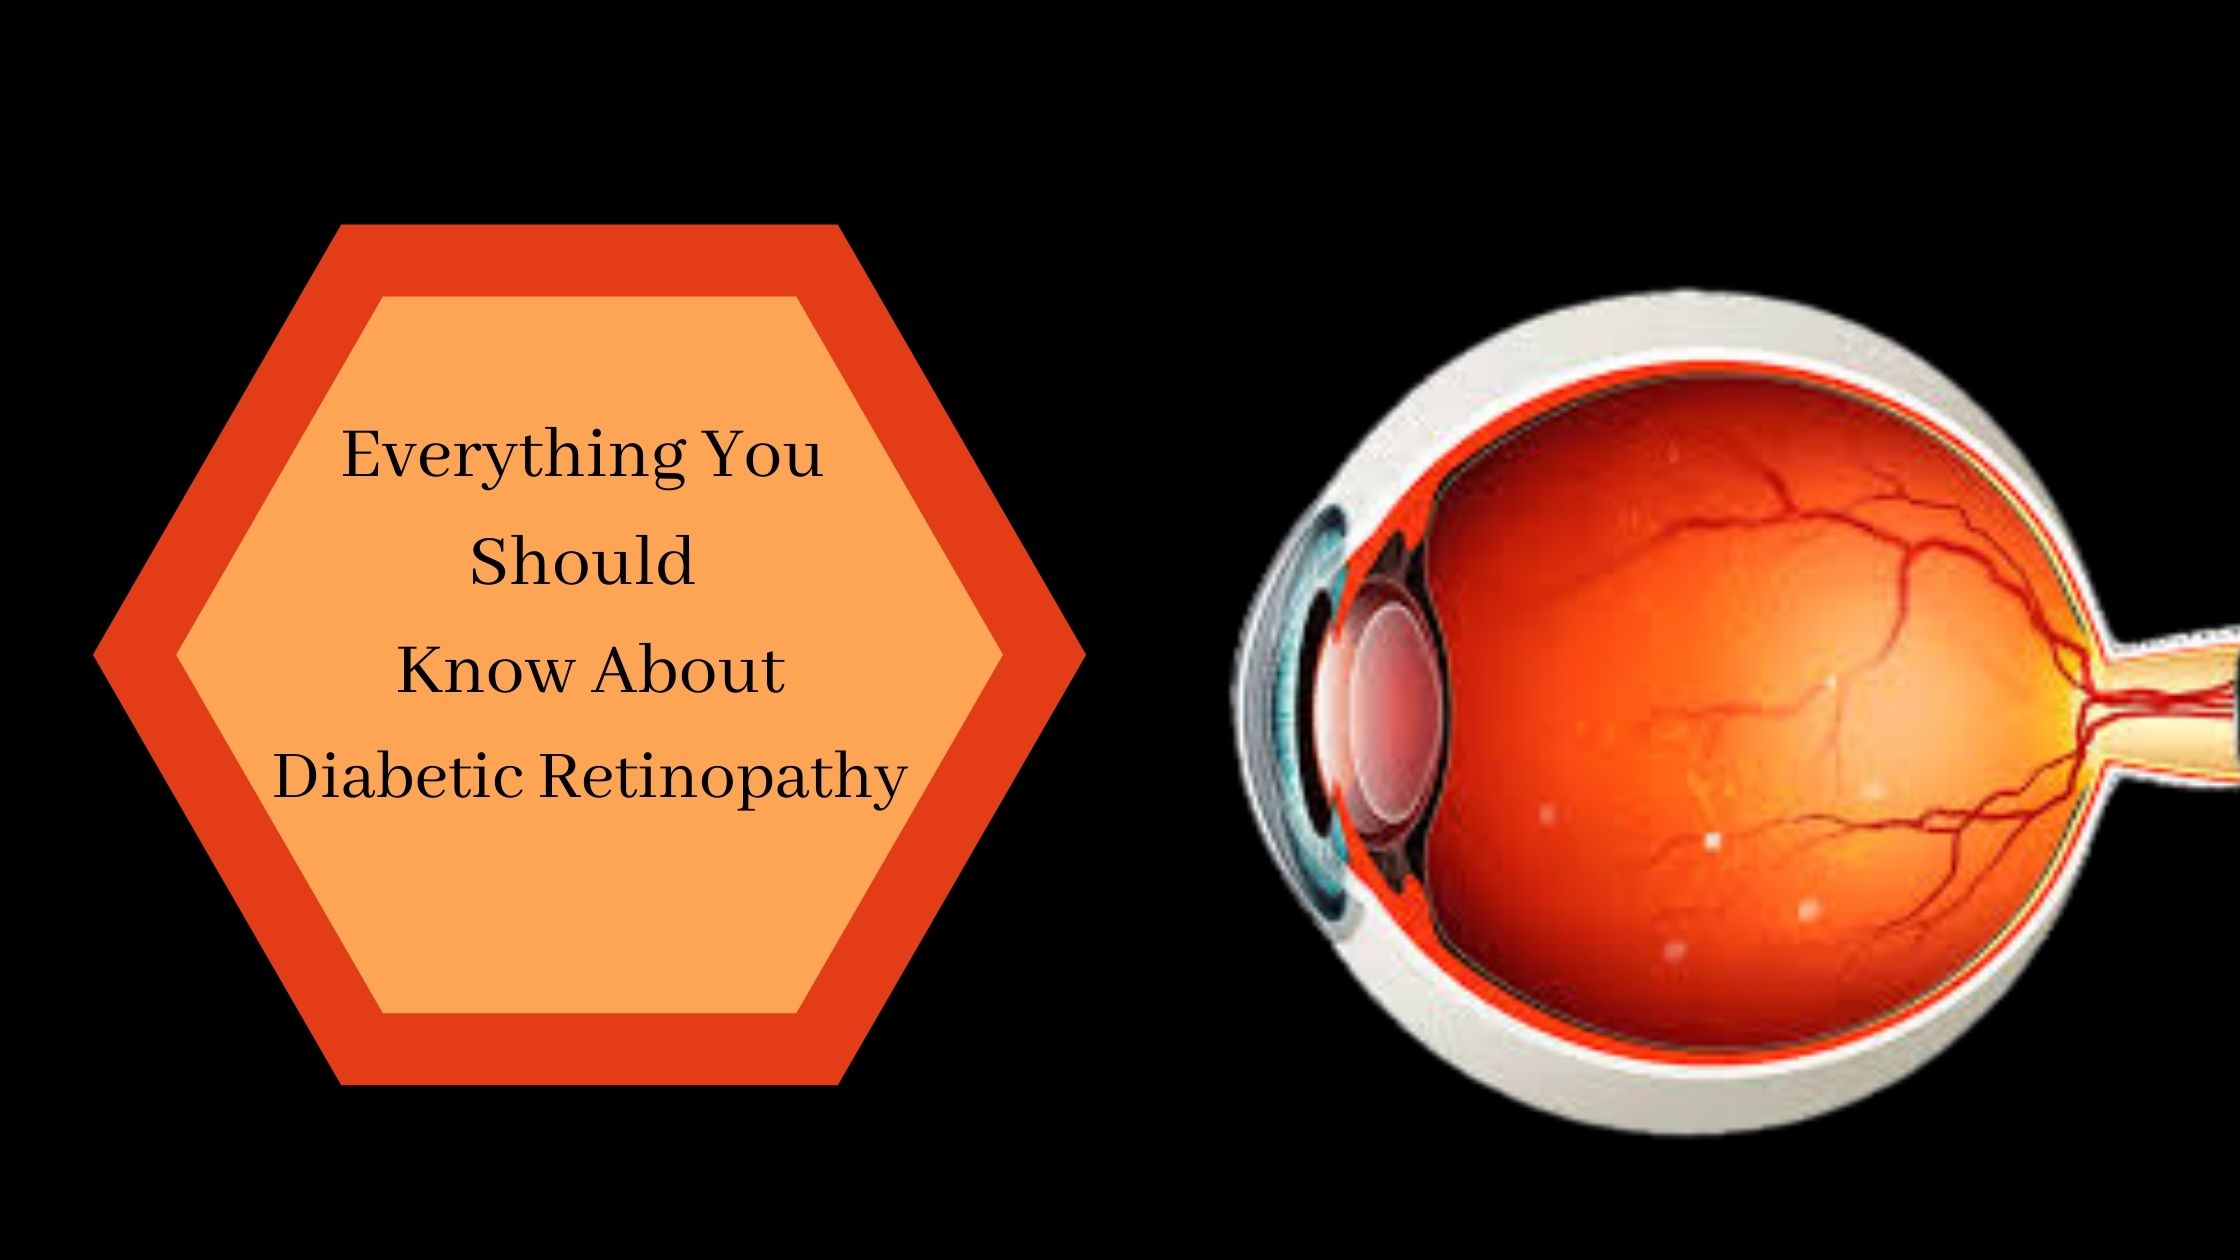 Everything You Should Know About Diabetic Retinopathy